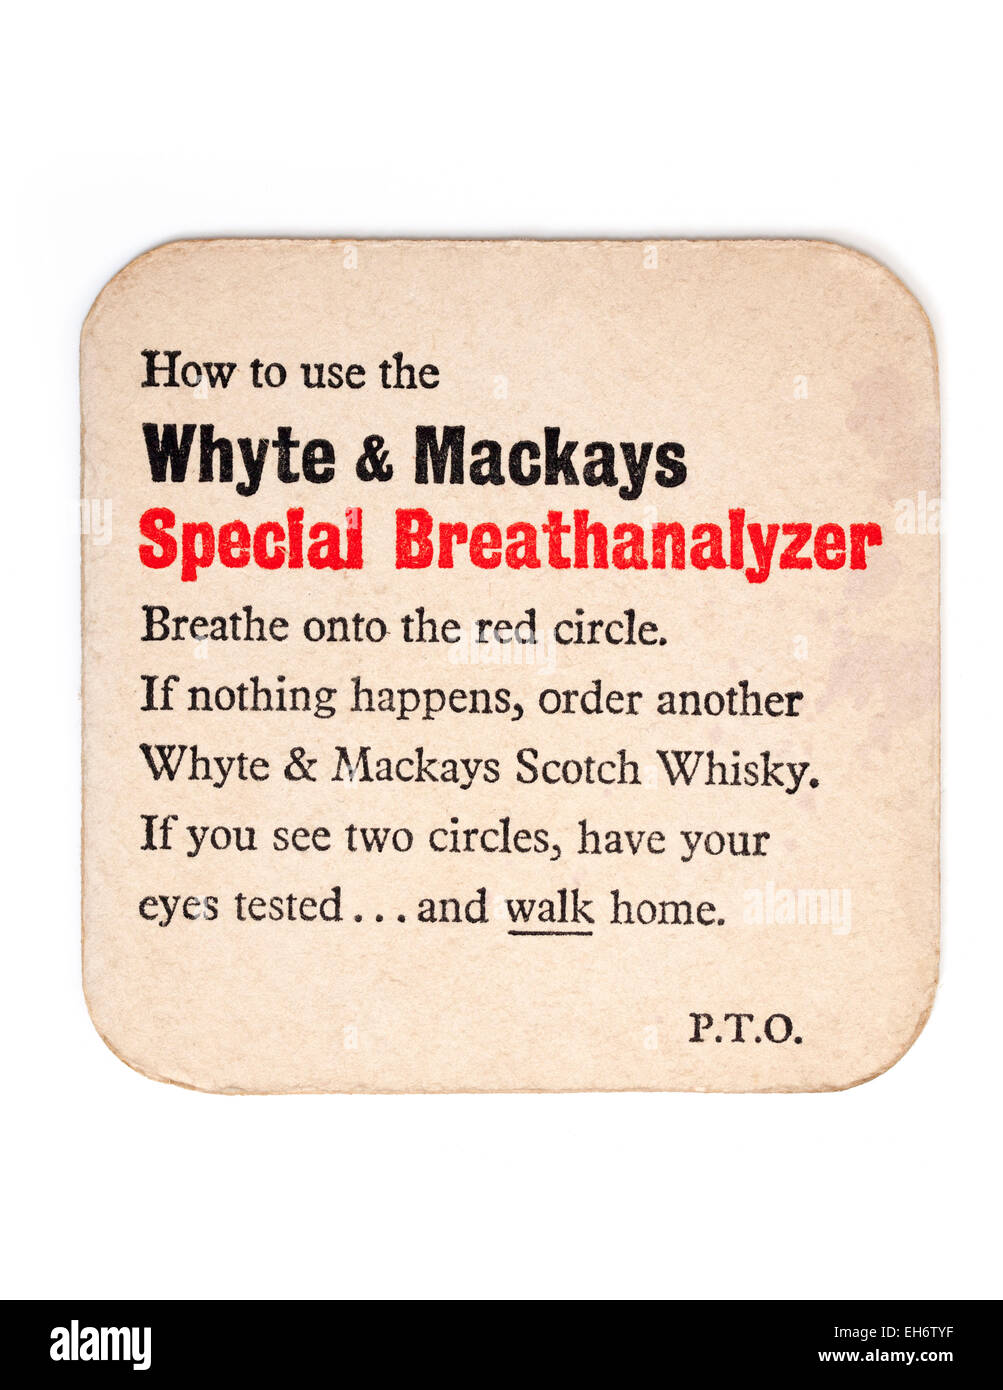 Vintage Beermat Advertising Whyte and Mackays Whisky - Stock Image